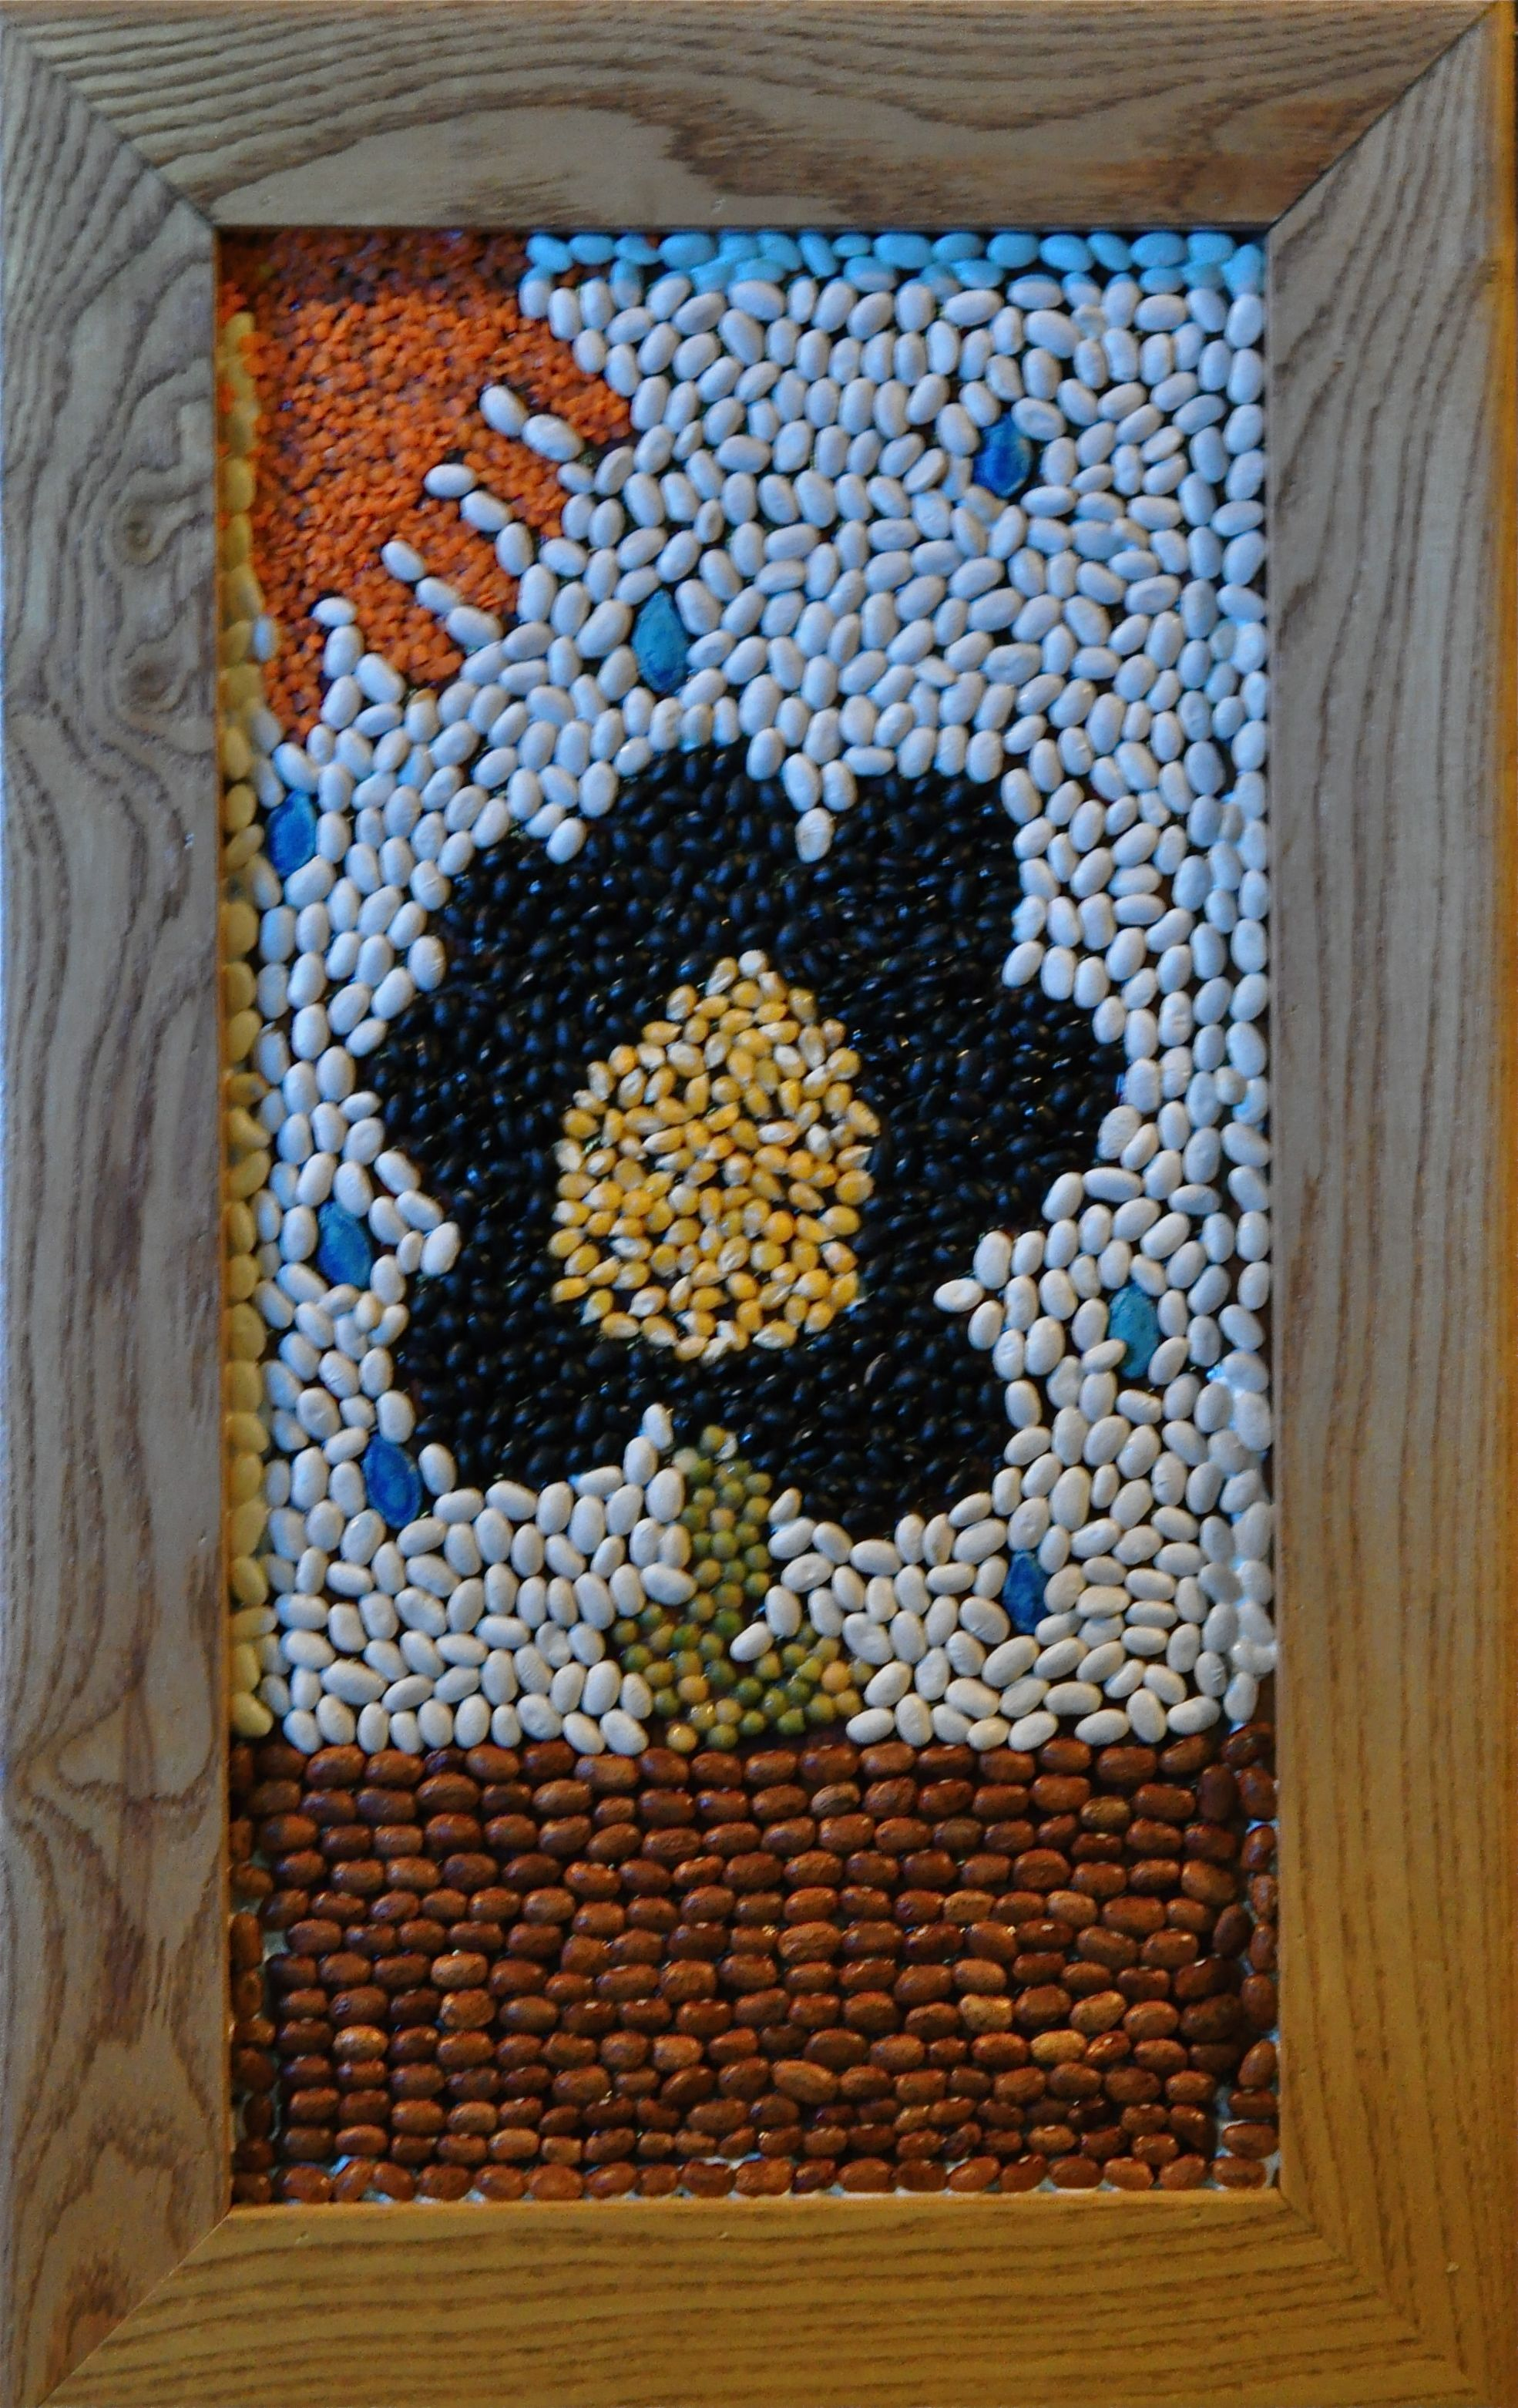 Bean And Seed Mosaic Crafts Ideas Using Beans Crafts For Kids